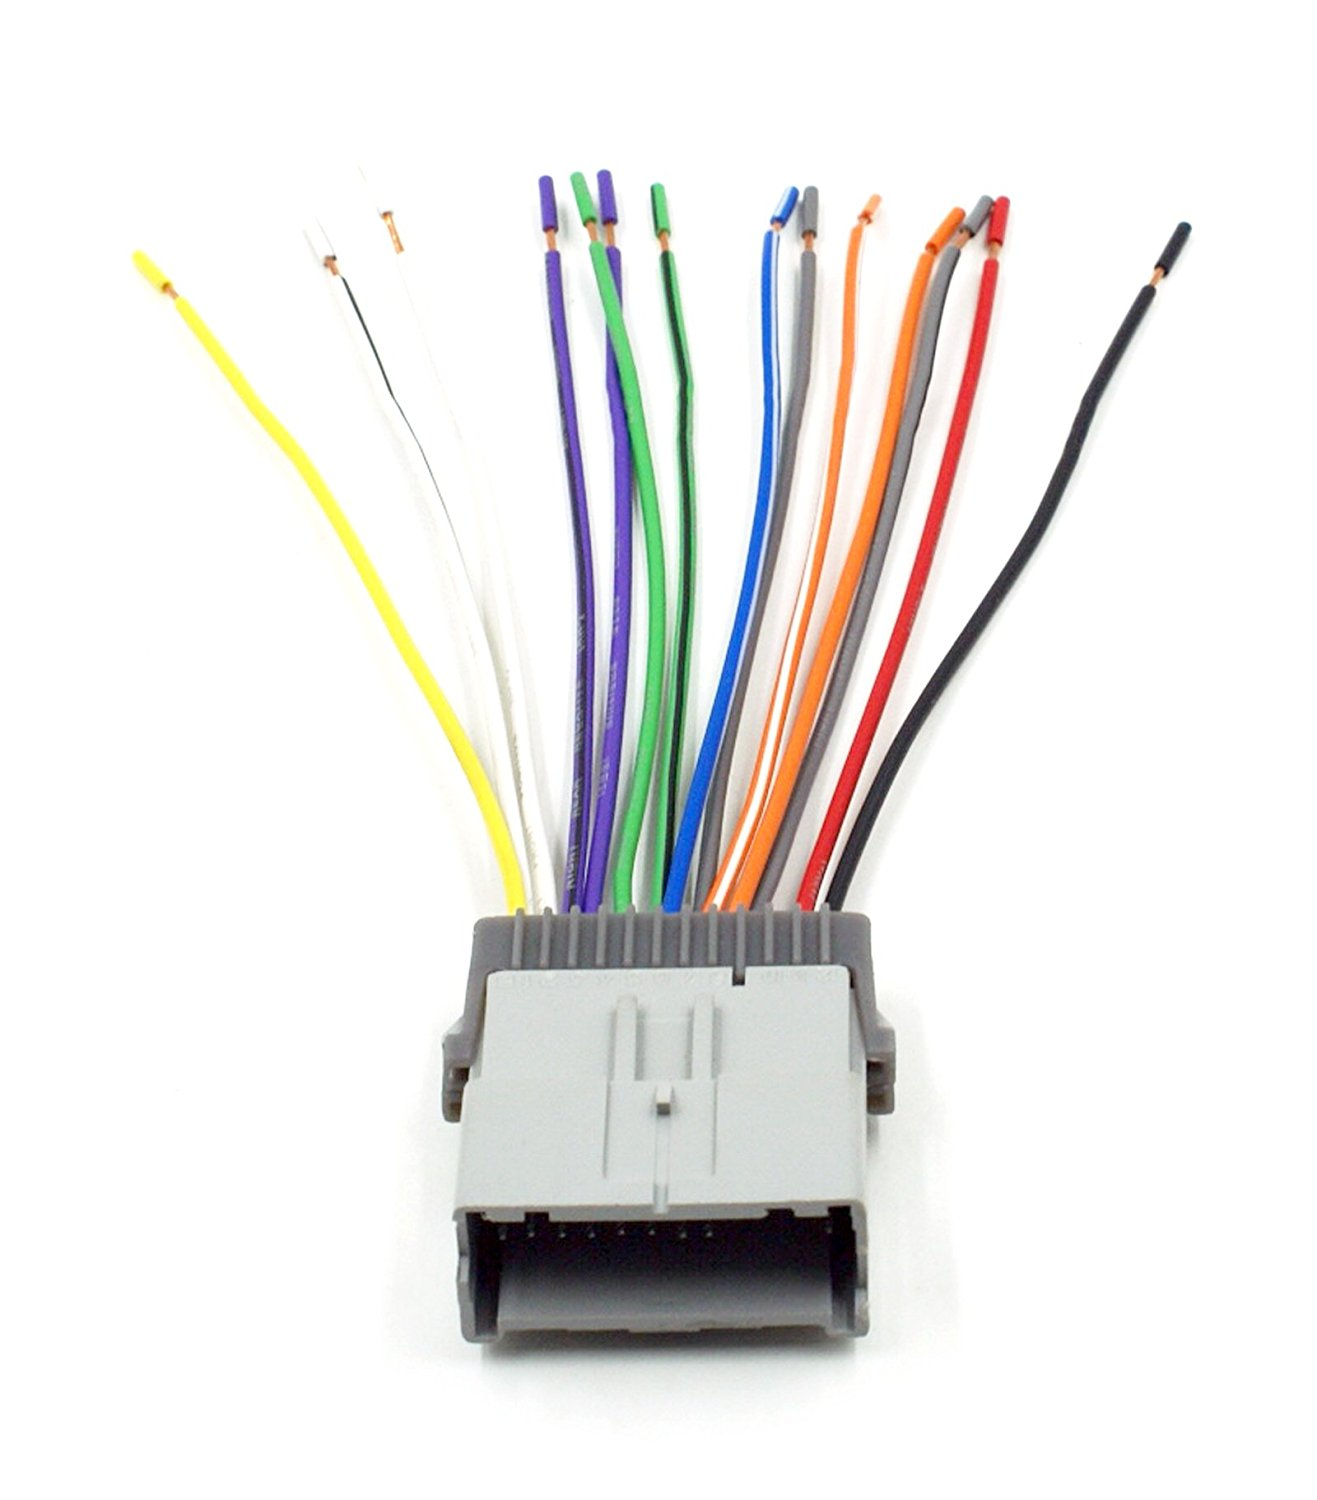 hight resolution of dnf saturn ion vue wiring harness for aftermarket radios cardnf saturn ion vue wiring harness for